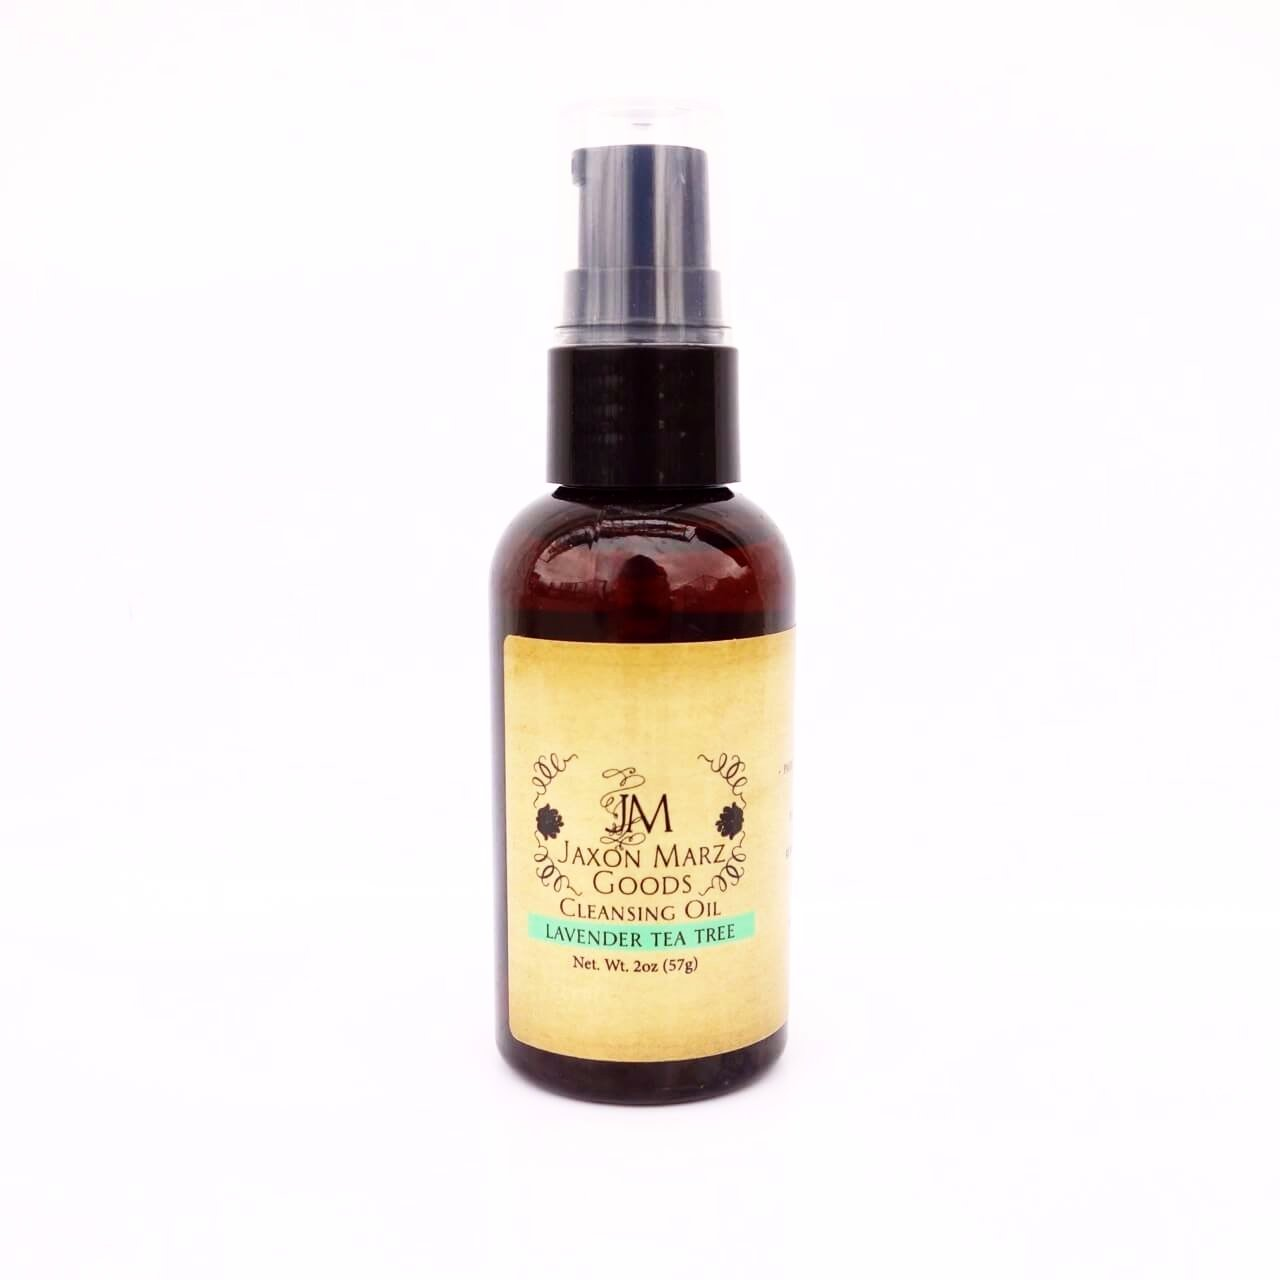 Lavender Tea Tree Cleansing Oil